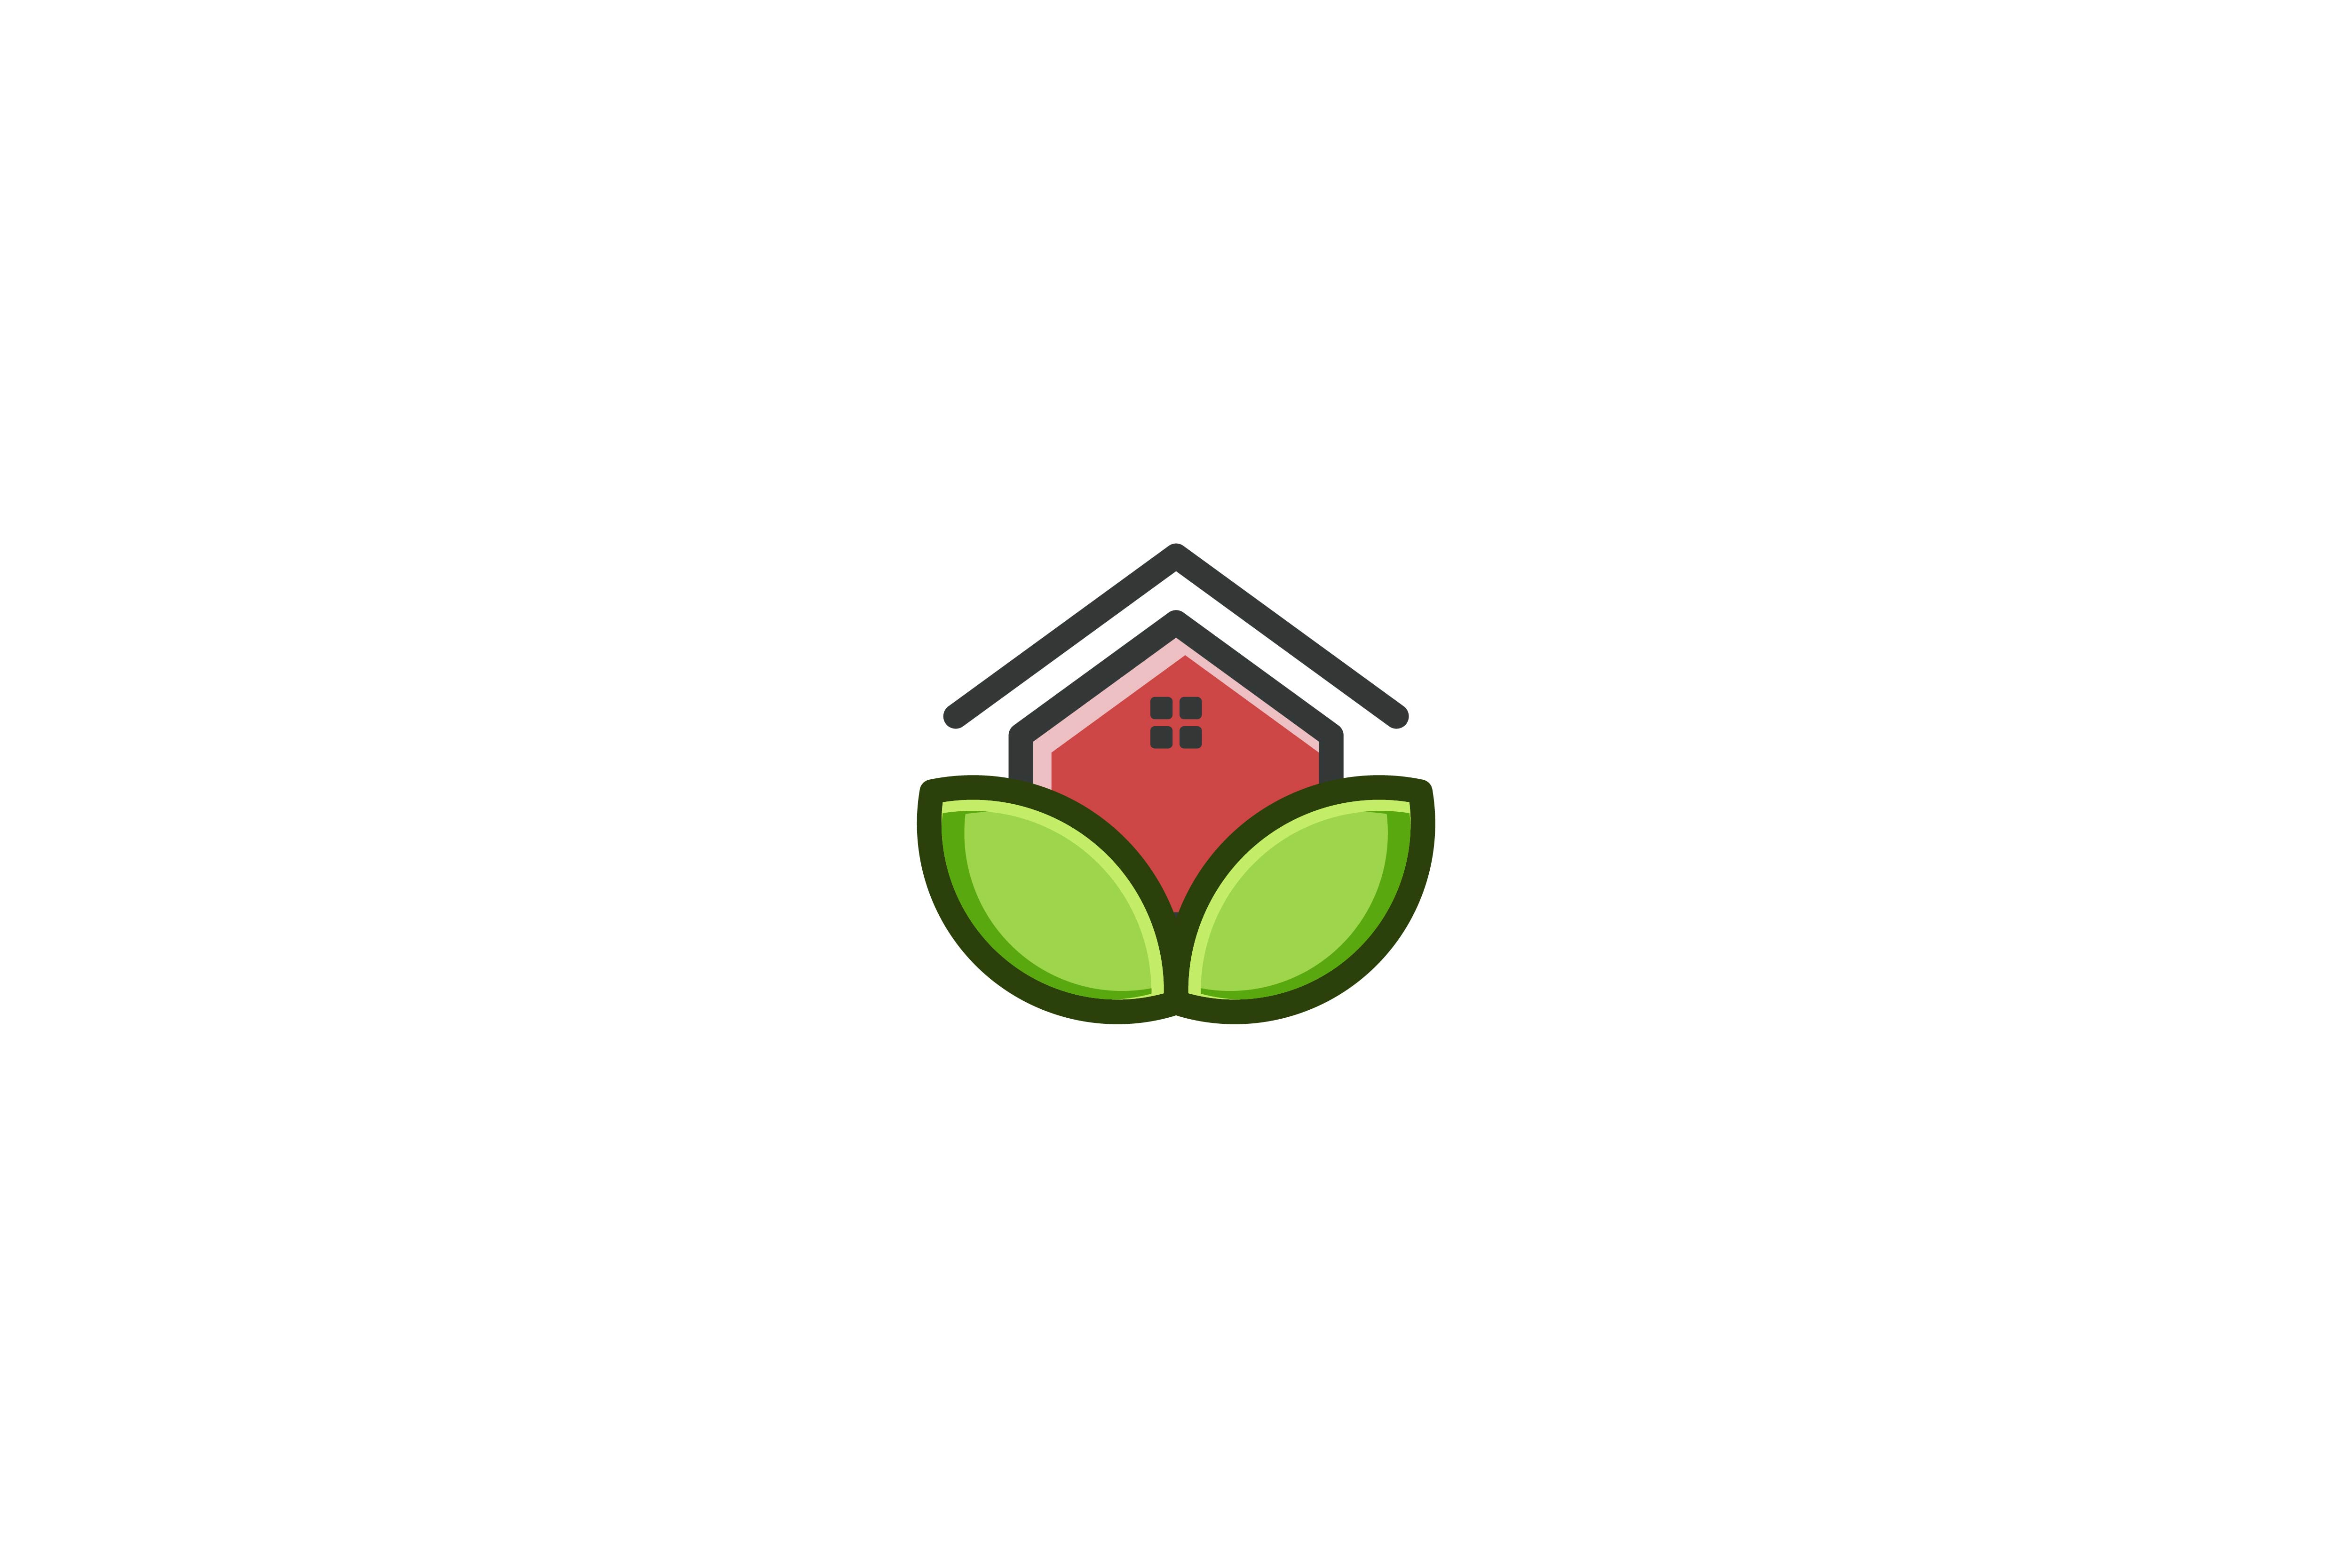 Download Free Eco House Eco Home Logo Design Graphic By Yahyaanasatokillah for Cricut Explore, Silhouette and other cutting machines.